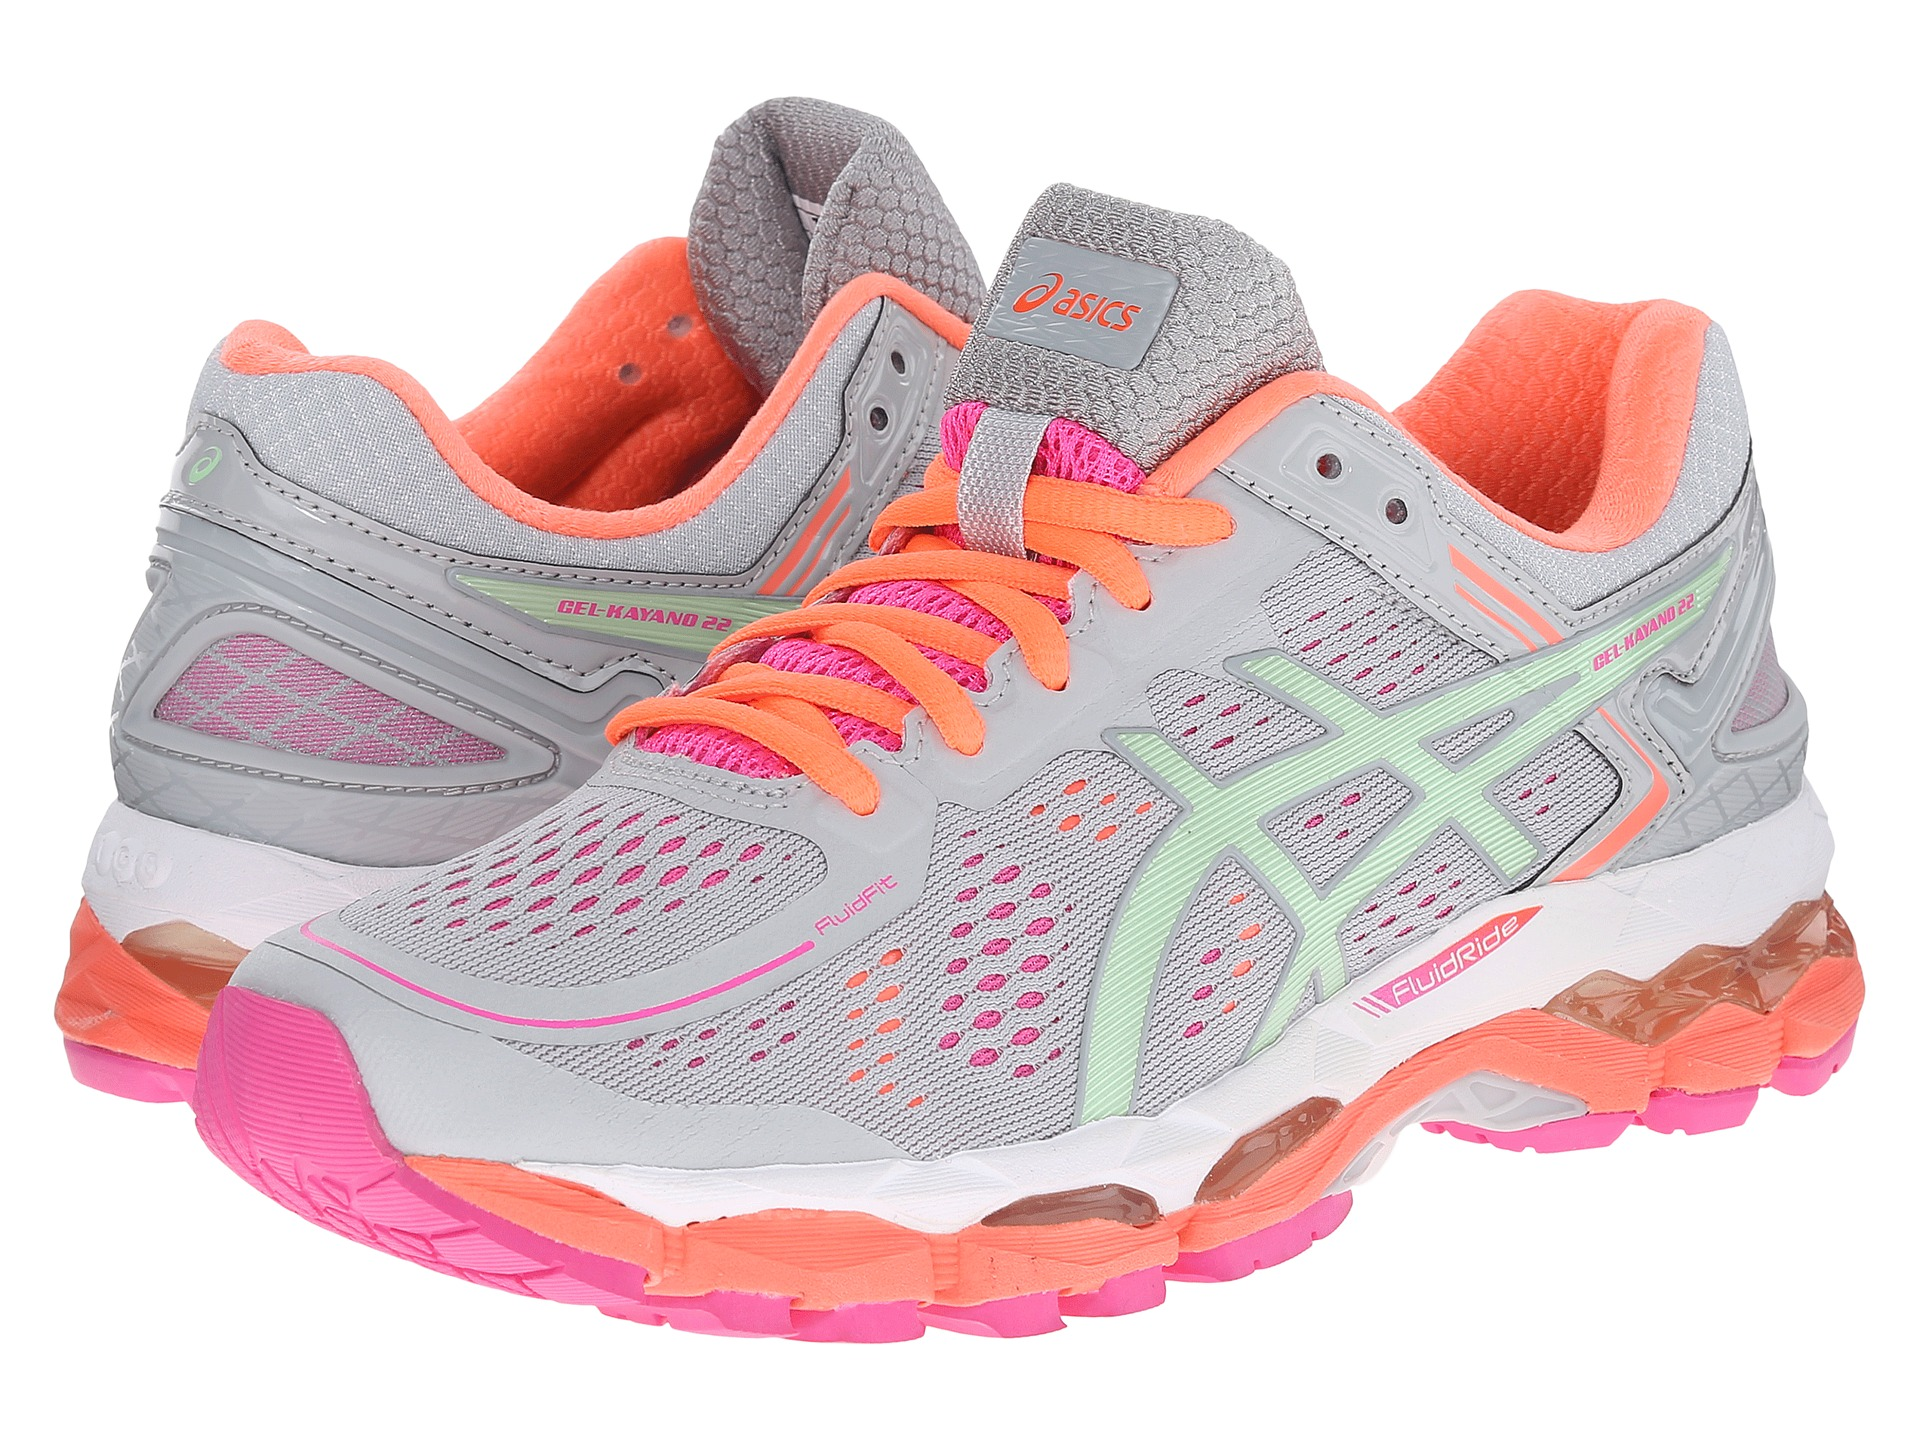 asics gel kayano 22 silver grey pistachio fiery coral free shipping both ways. Black Bedroom Furniture Sets. Home Design Ideas